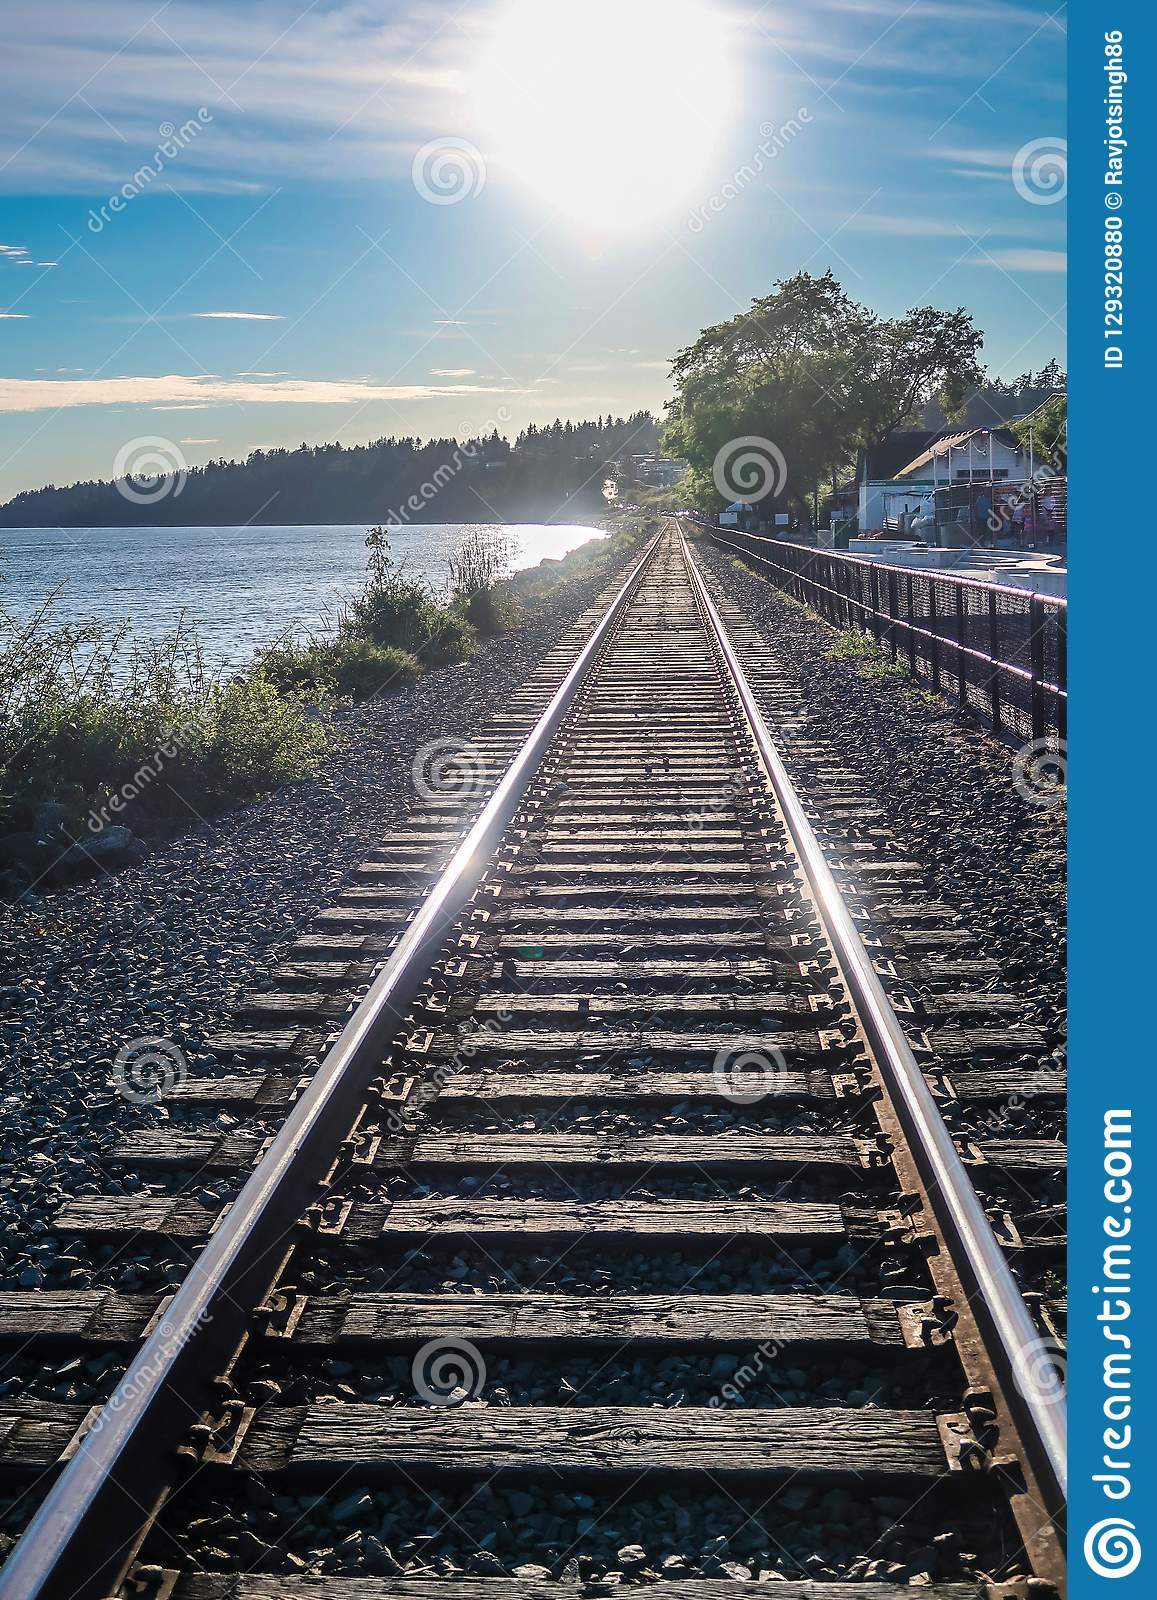 View of the length of railway track with glorious sunlight rays, river, distant mountains and greenery creating scenic landscape,